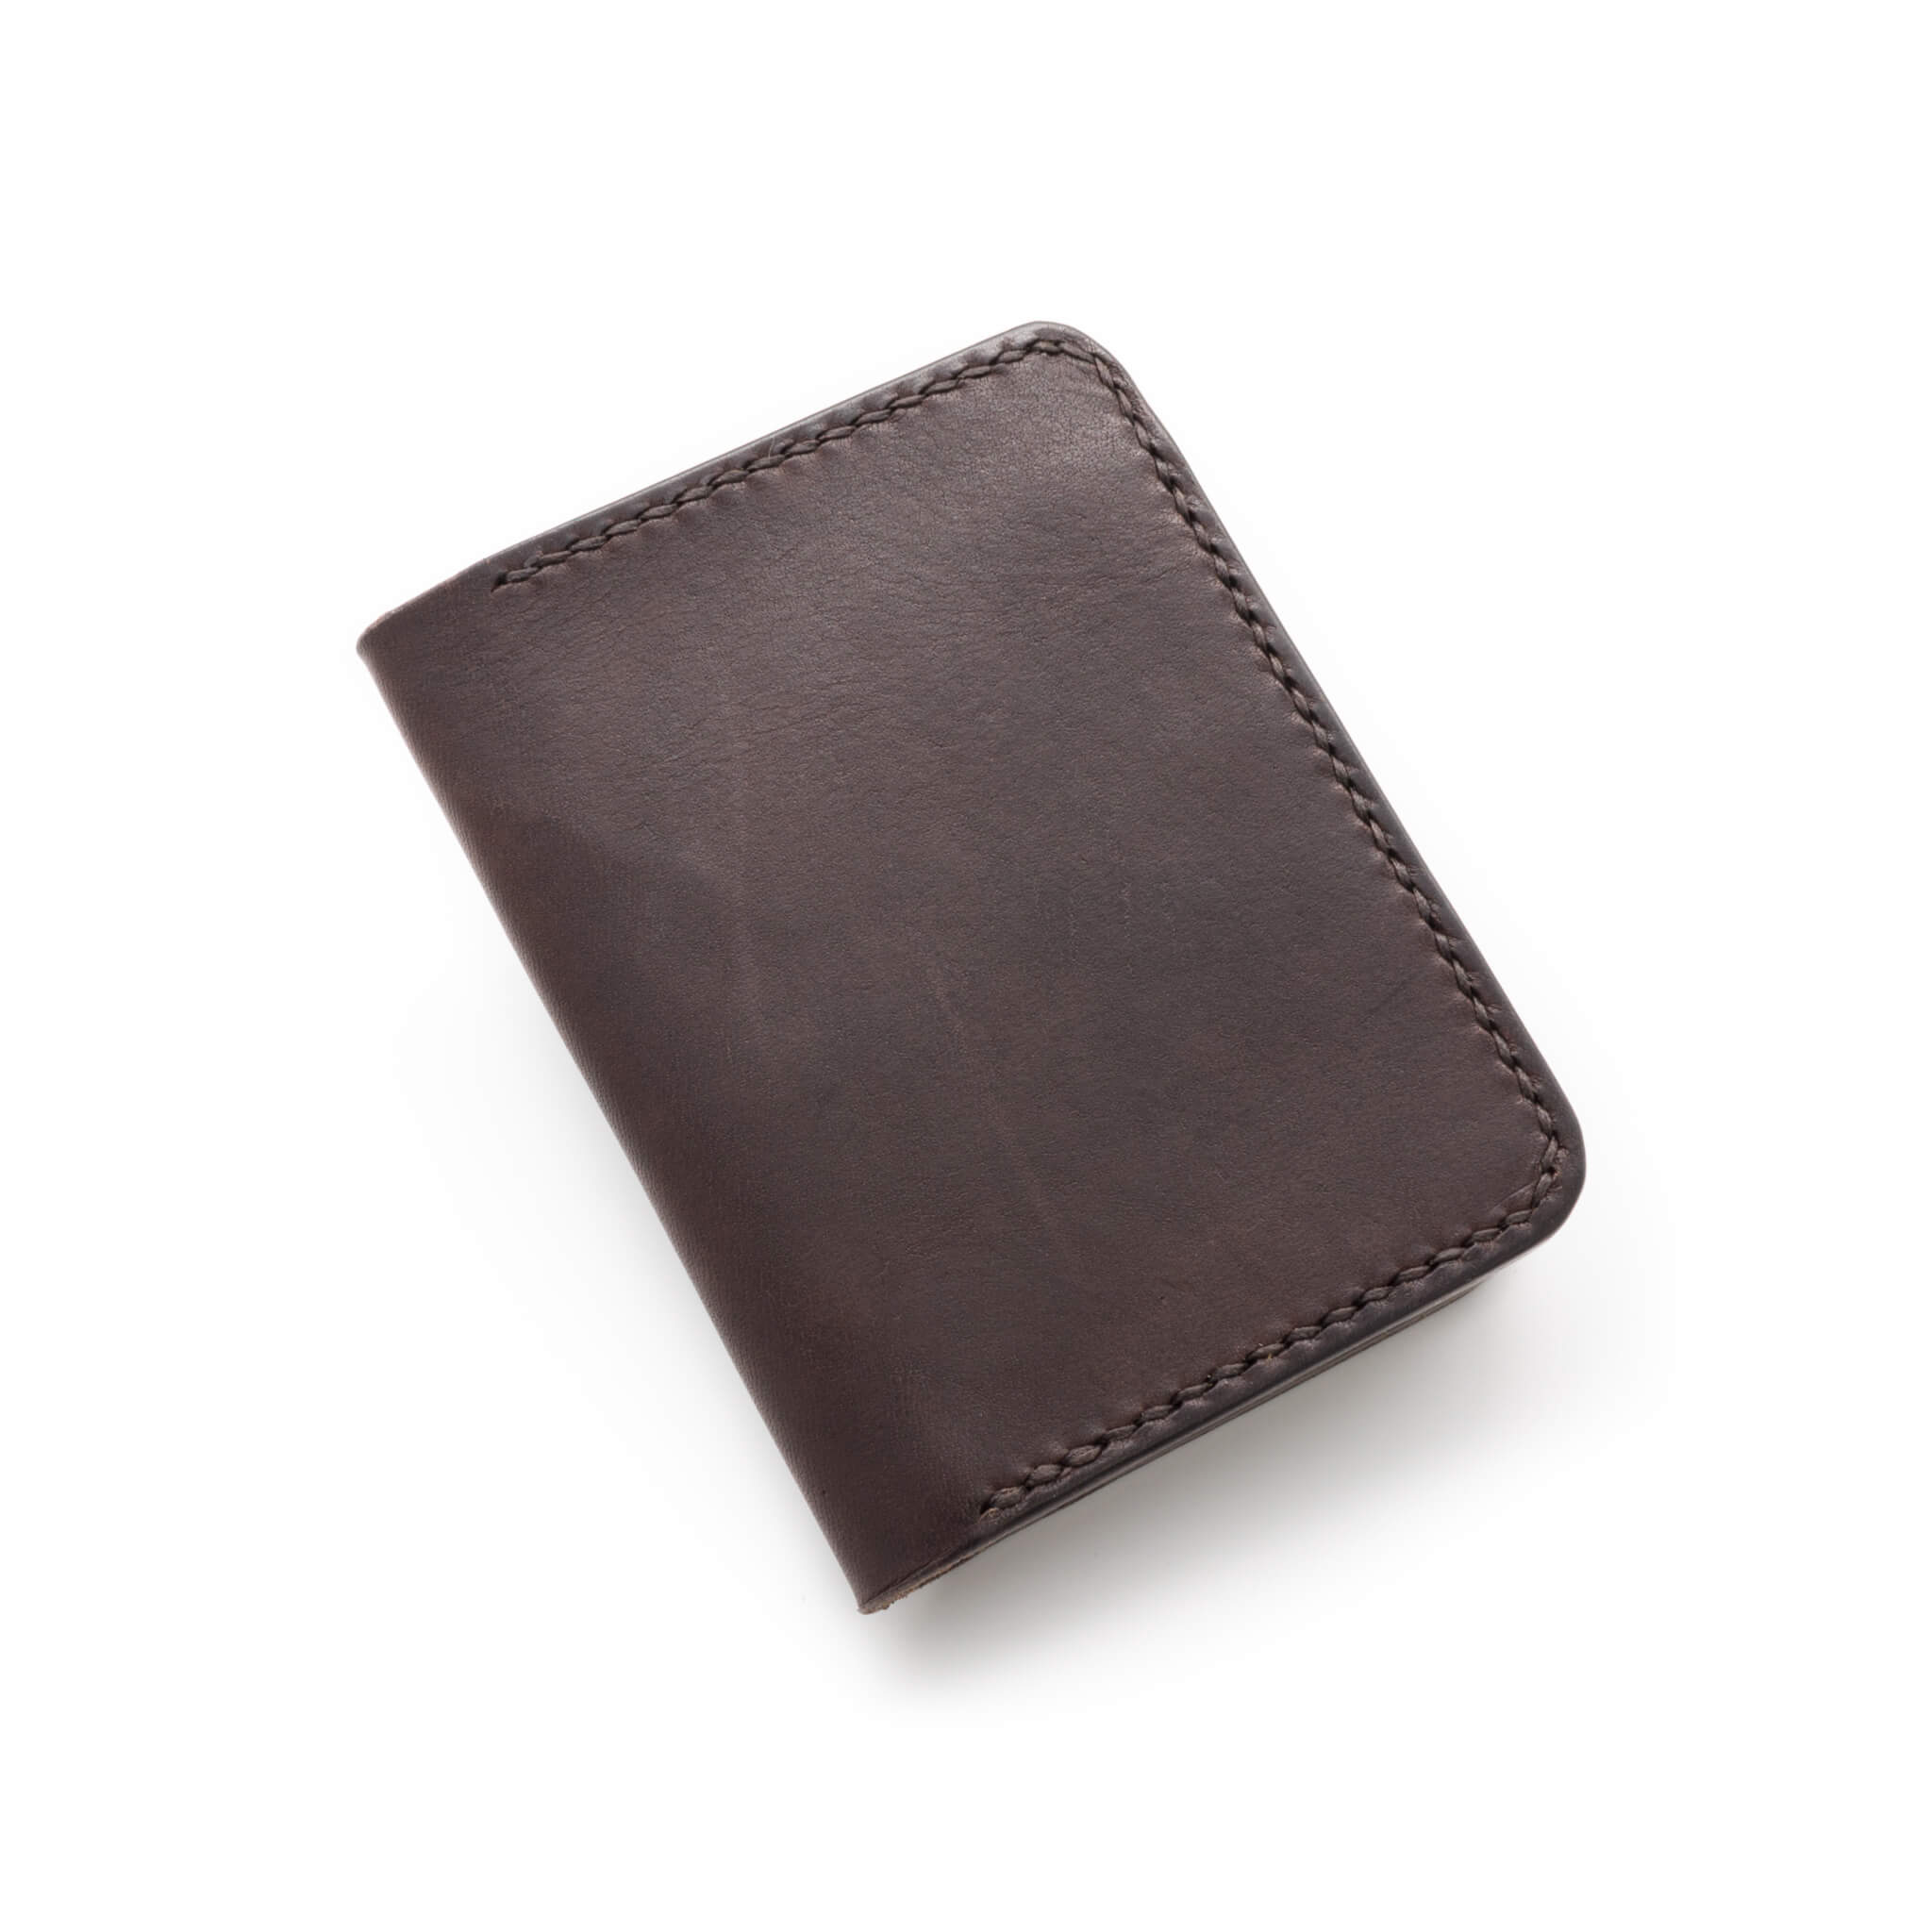 Hand made leather bifold wallet in Dark Brown